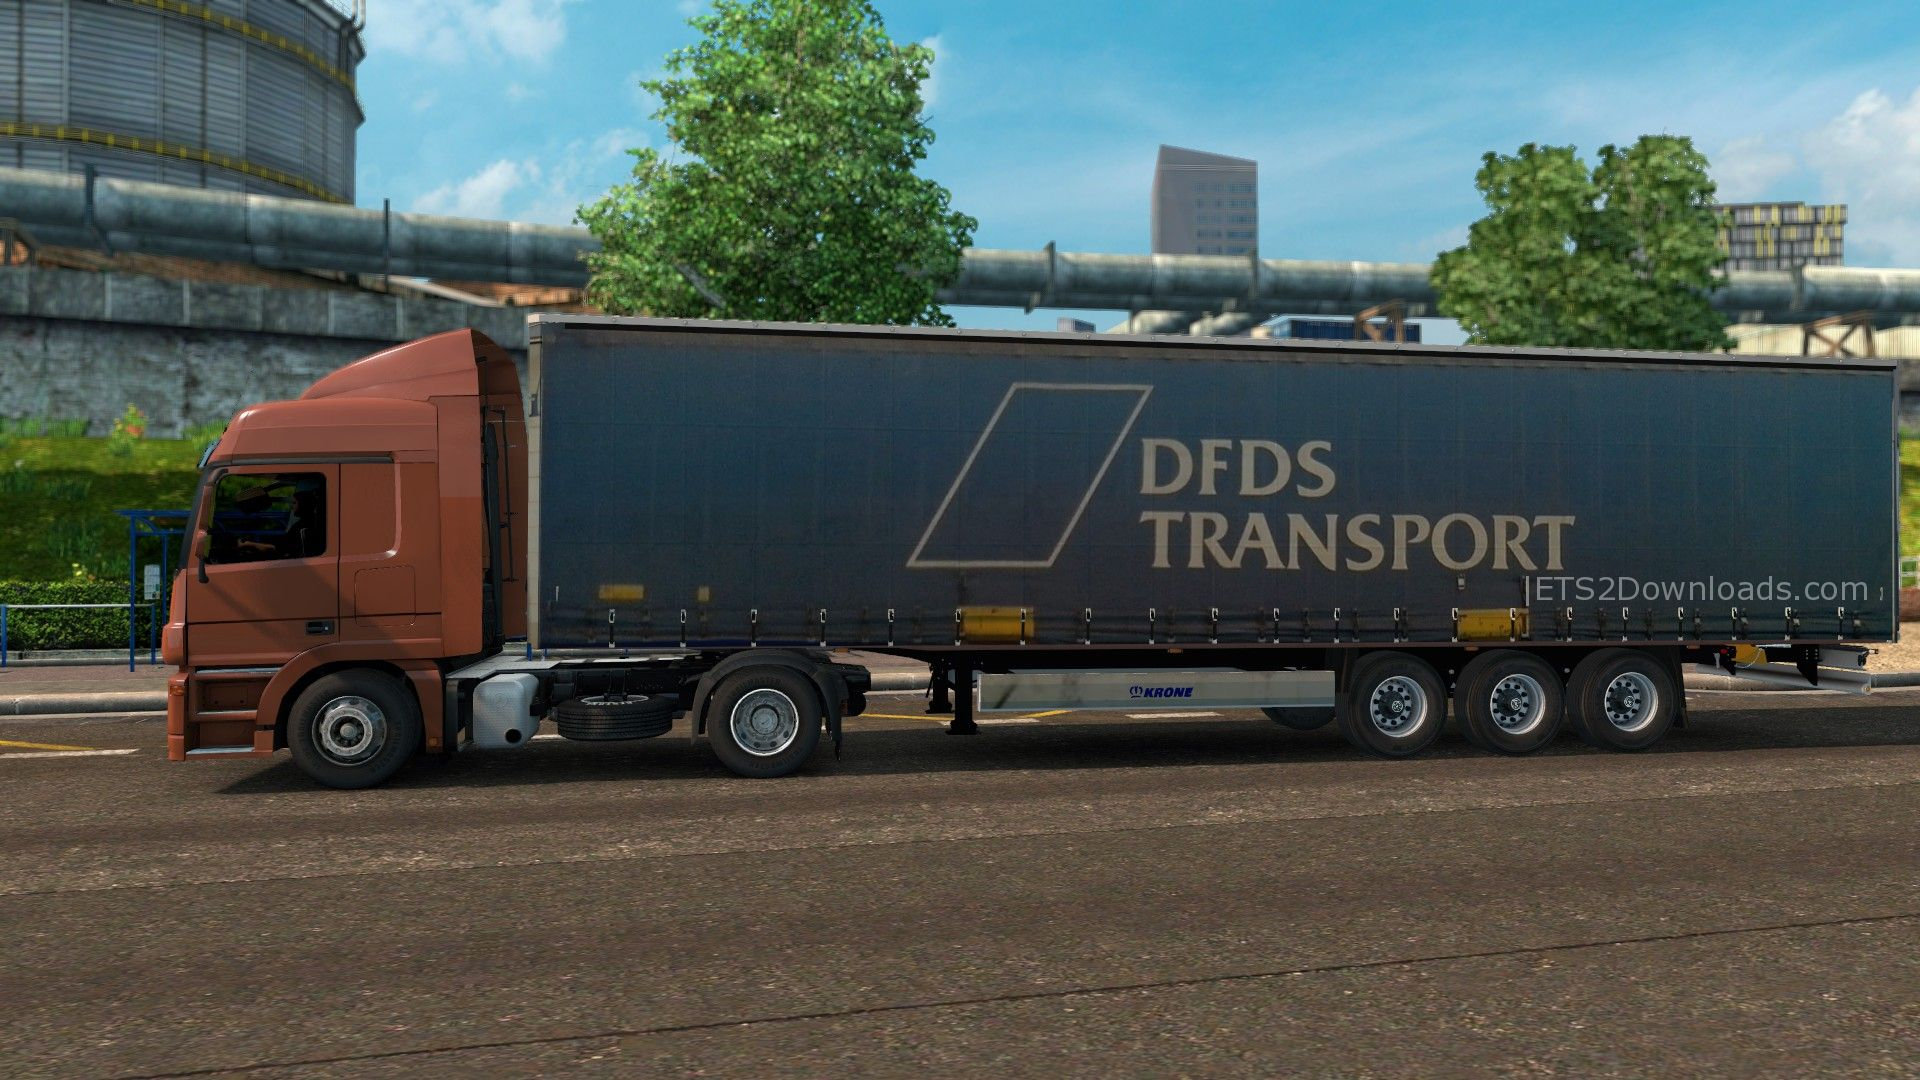 dirty-dfds-transport-trailer-2